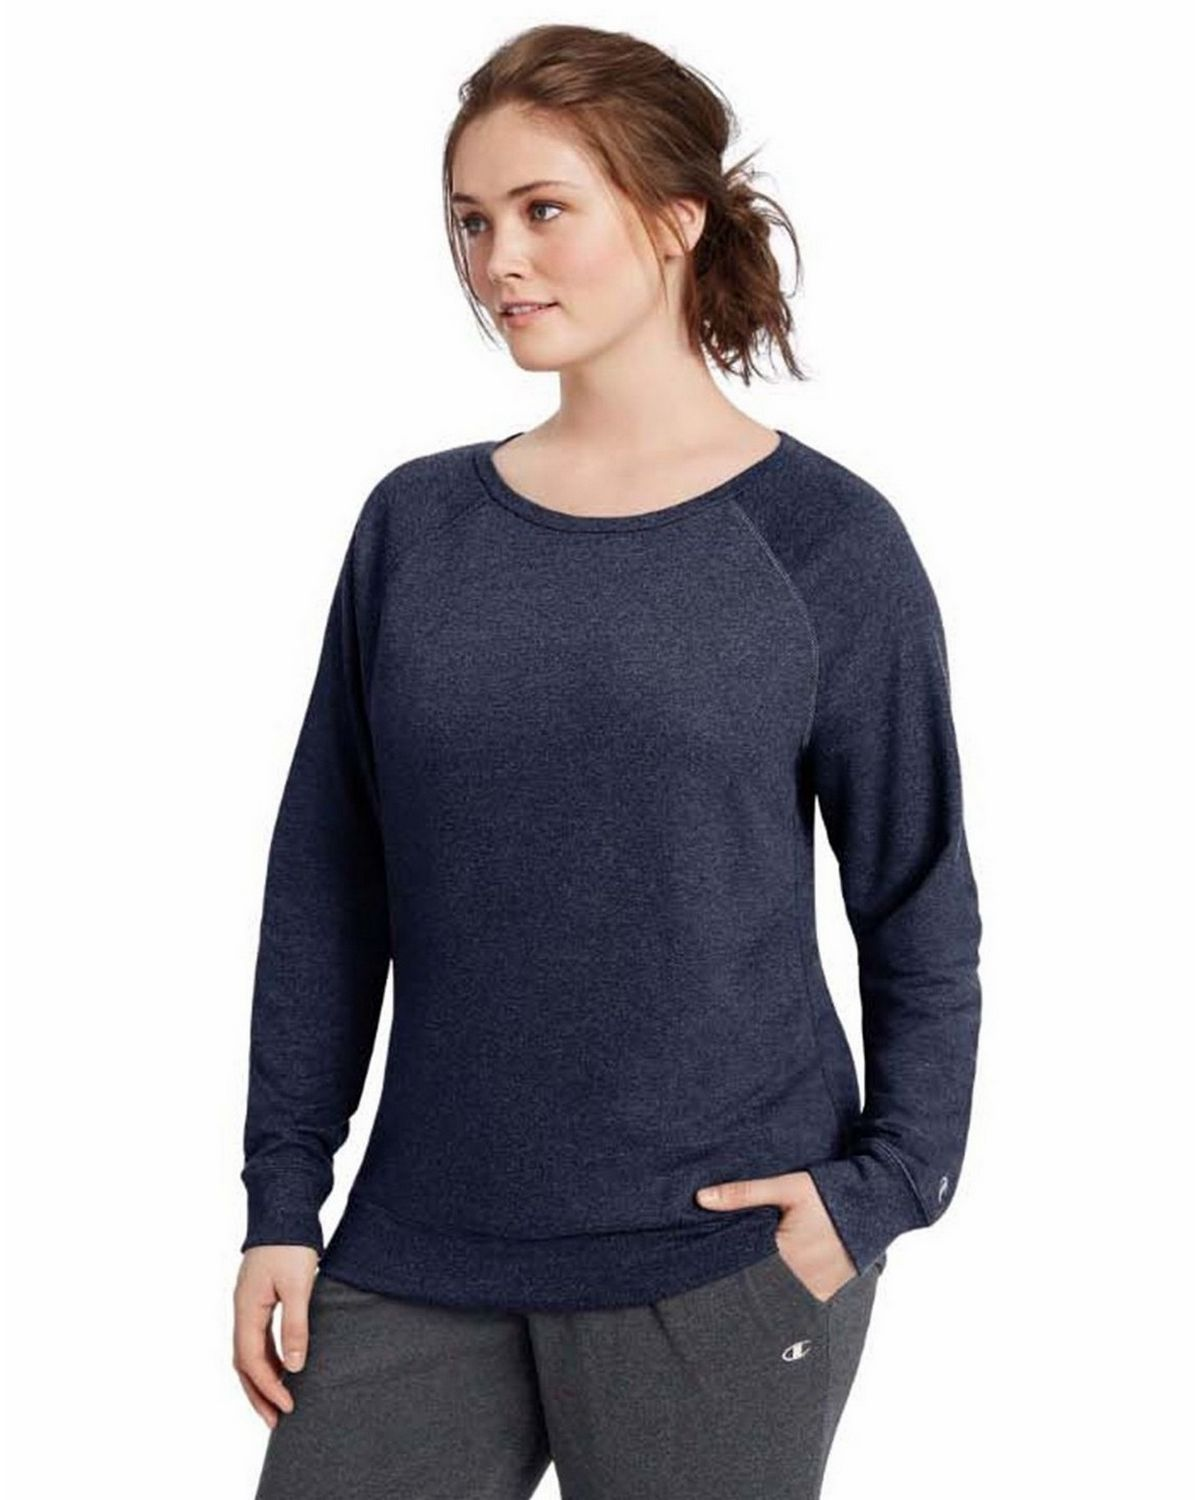 Champion QW1239 Plus French Terry Top - Granite Heather - 1X QW1239